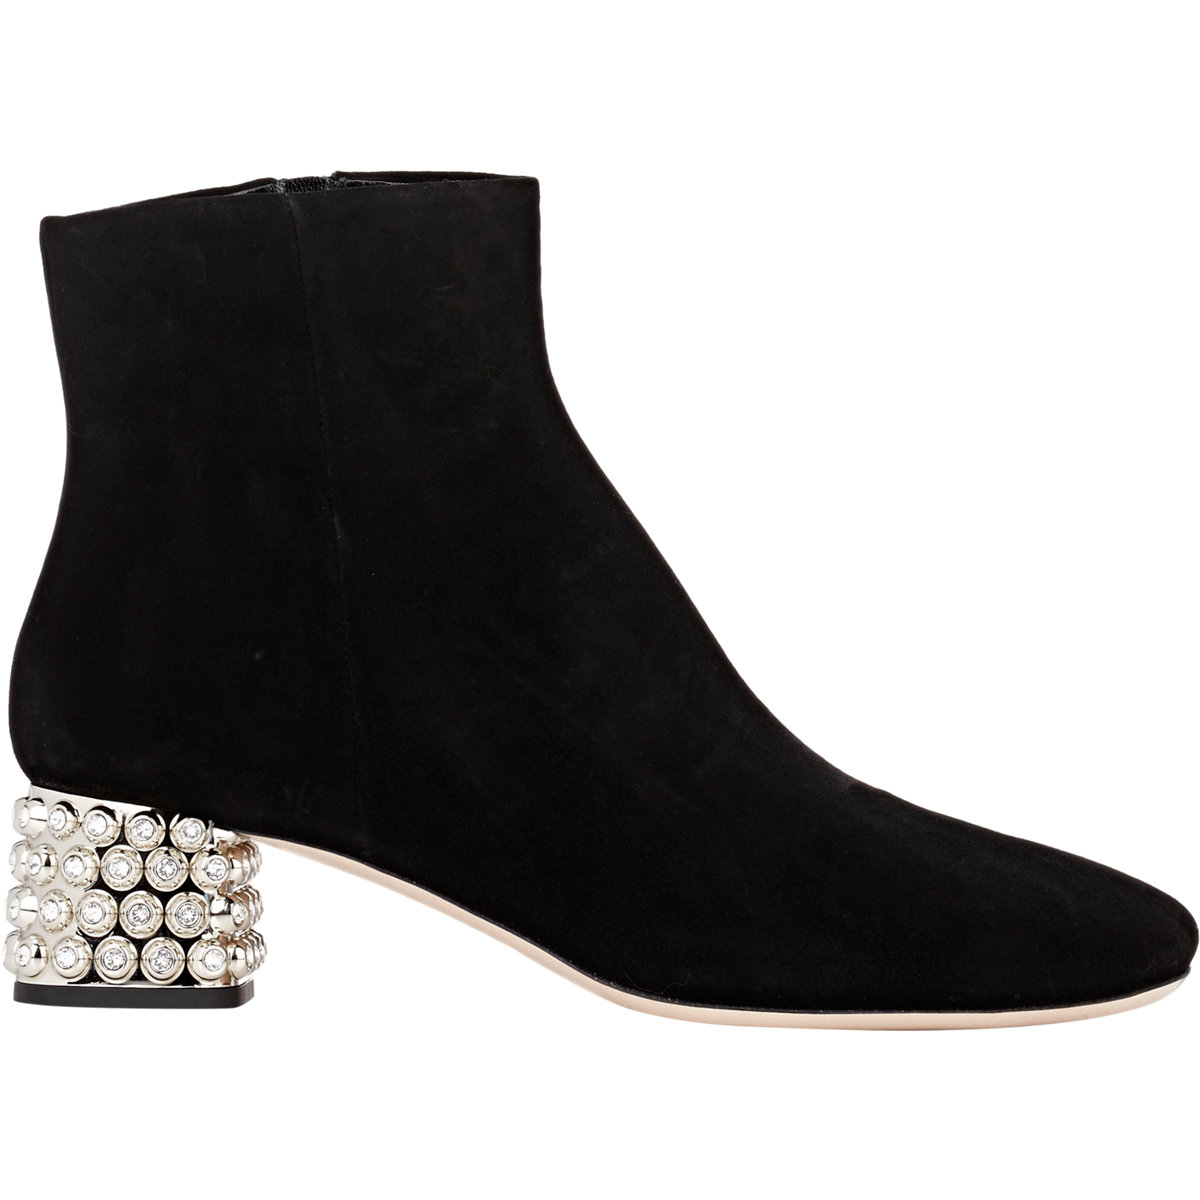 discount view cheapest price online Miu Miu Embellished Ankle Boots buy cheap with paypal clearance official site W55Ia